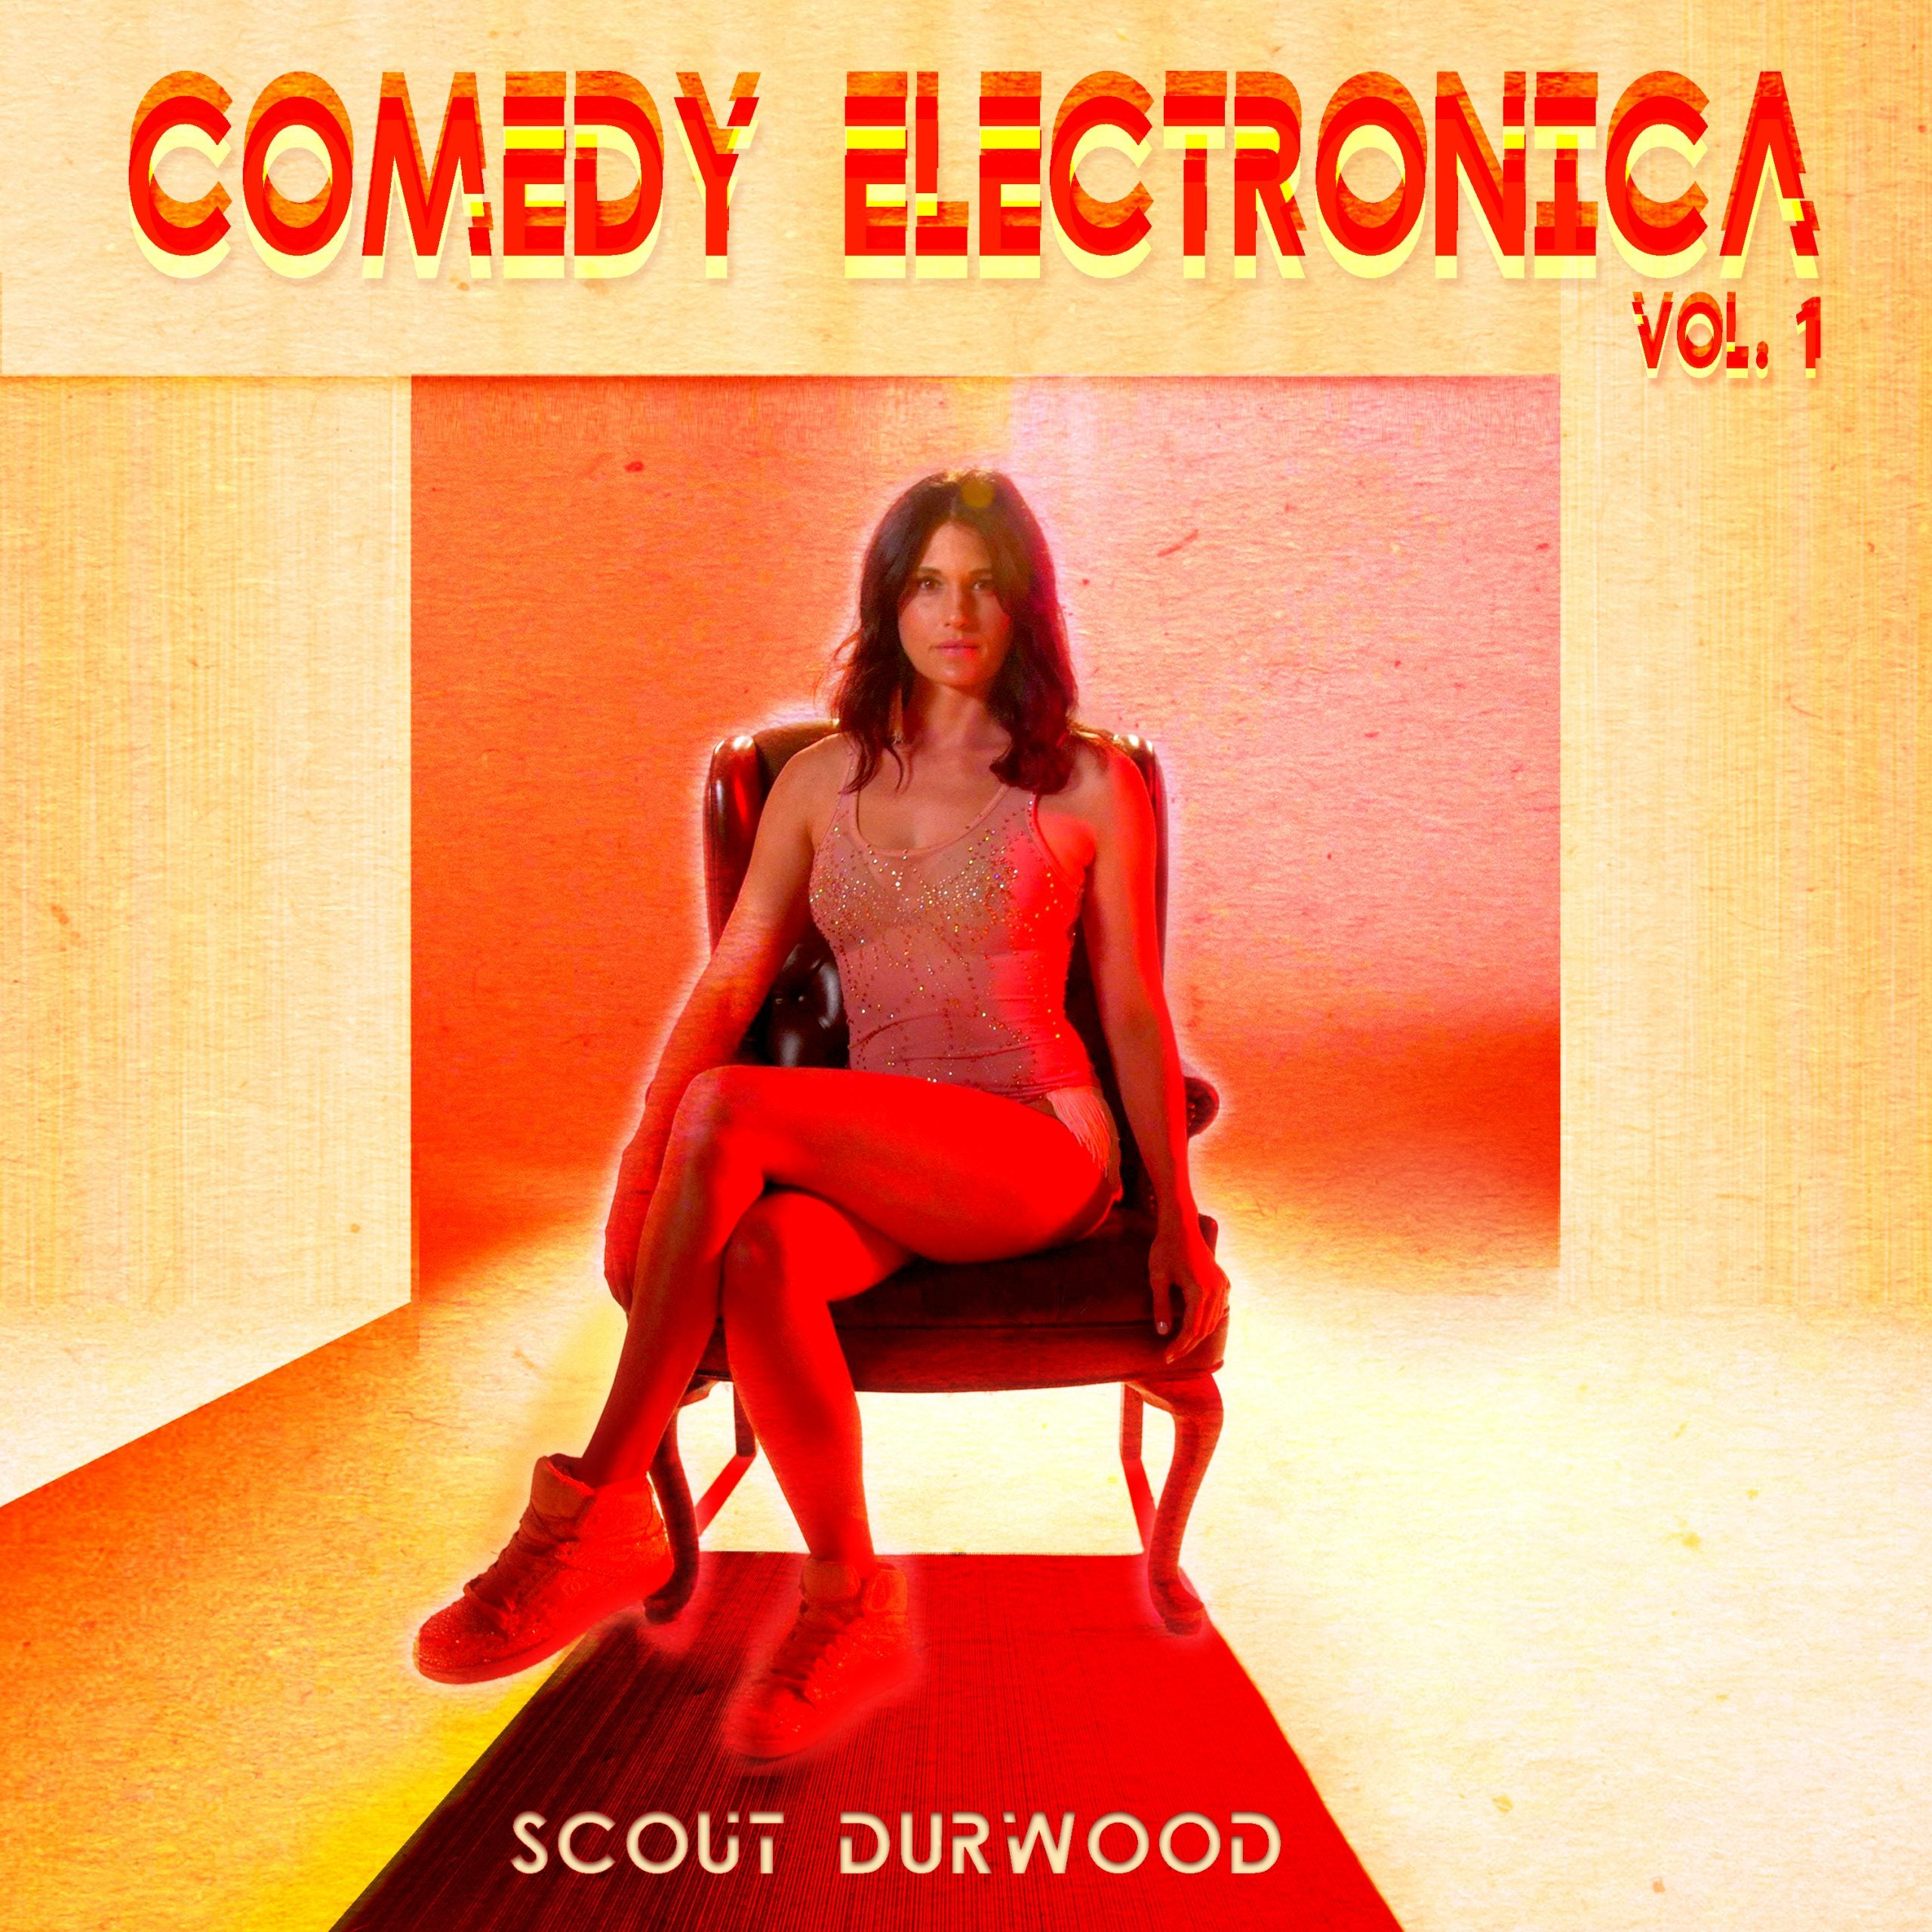 Comedy Electronica Vol. 1